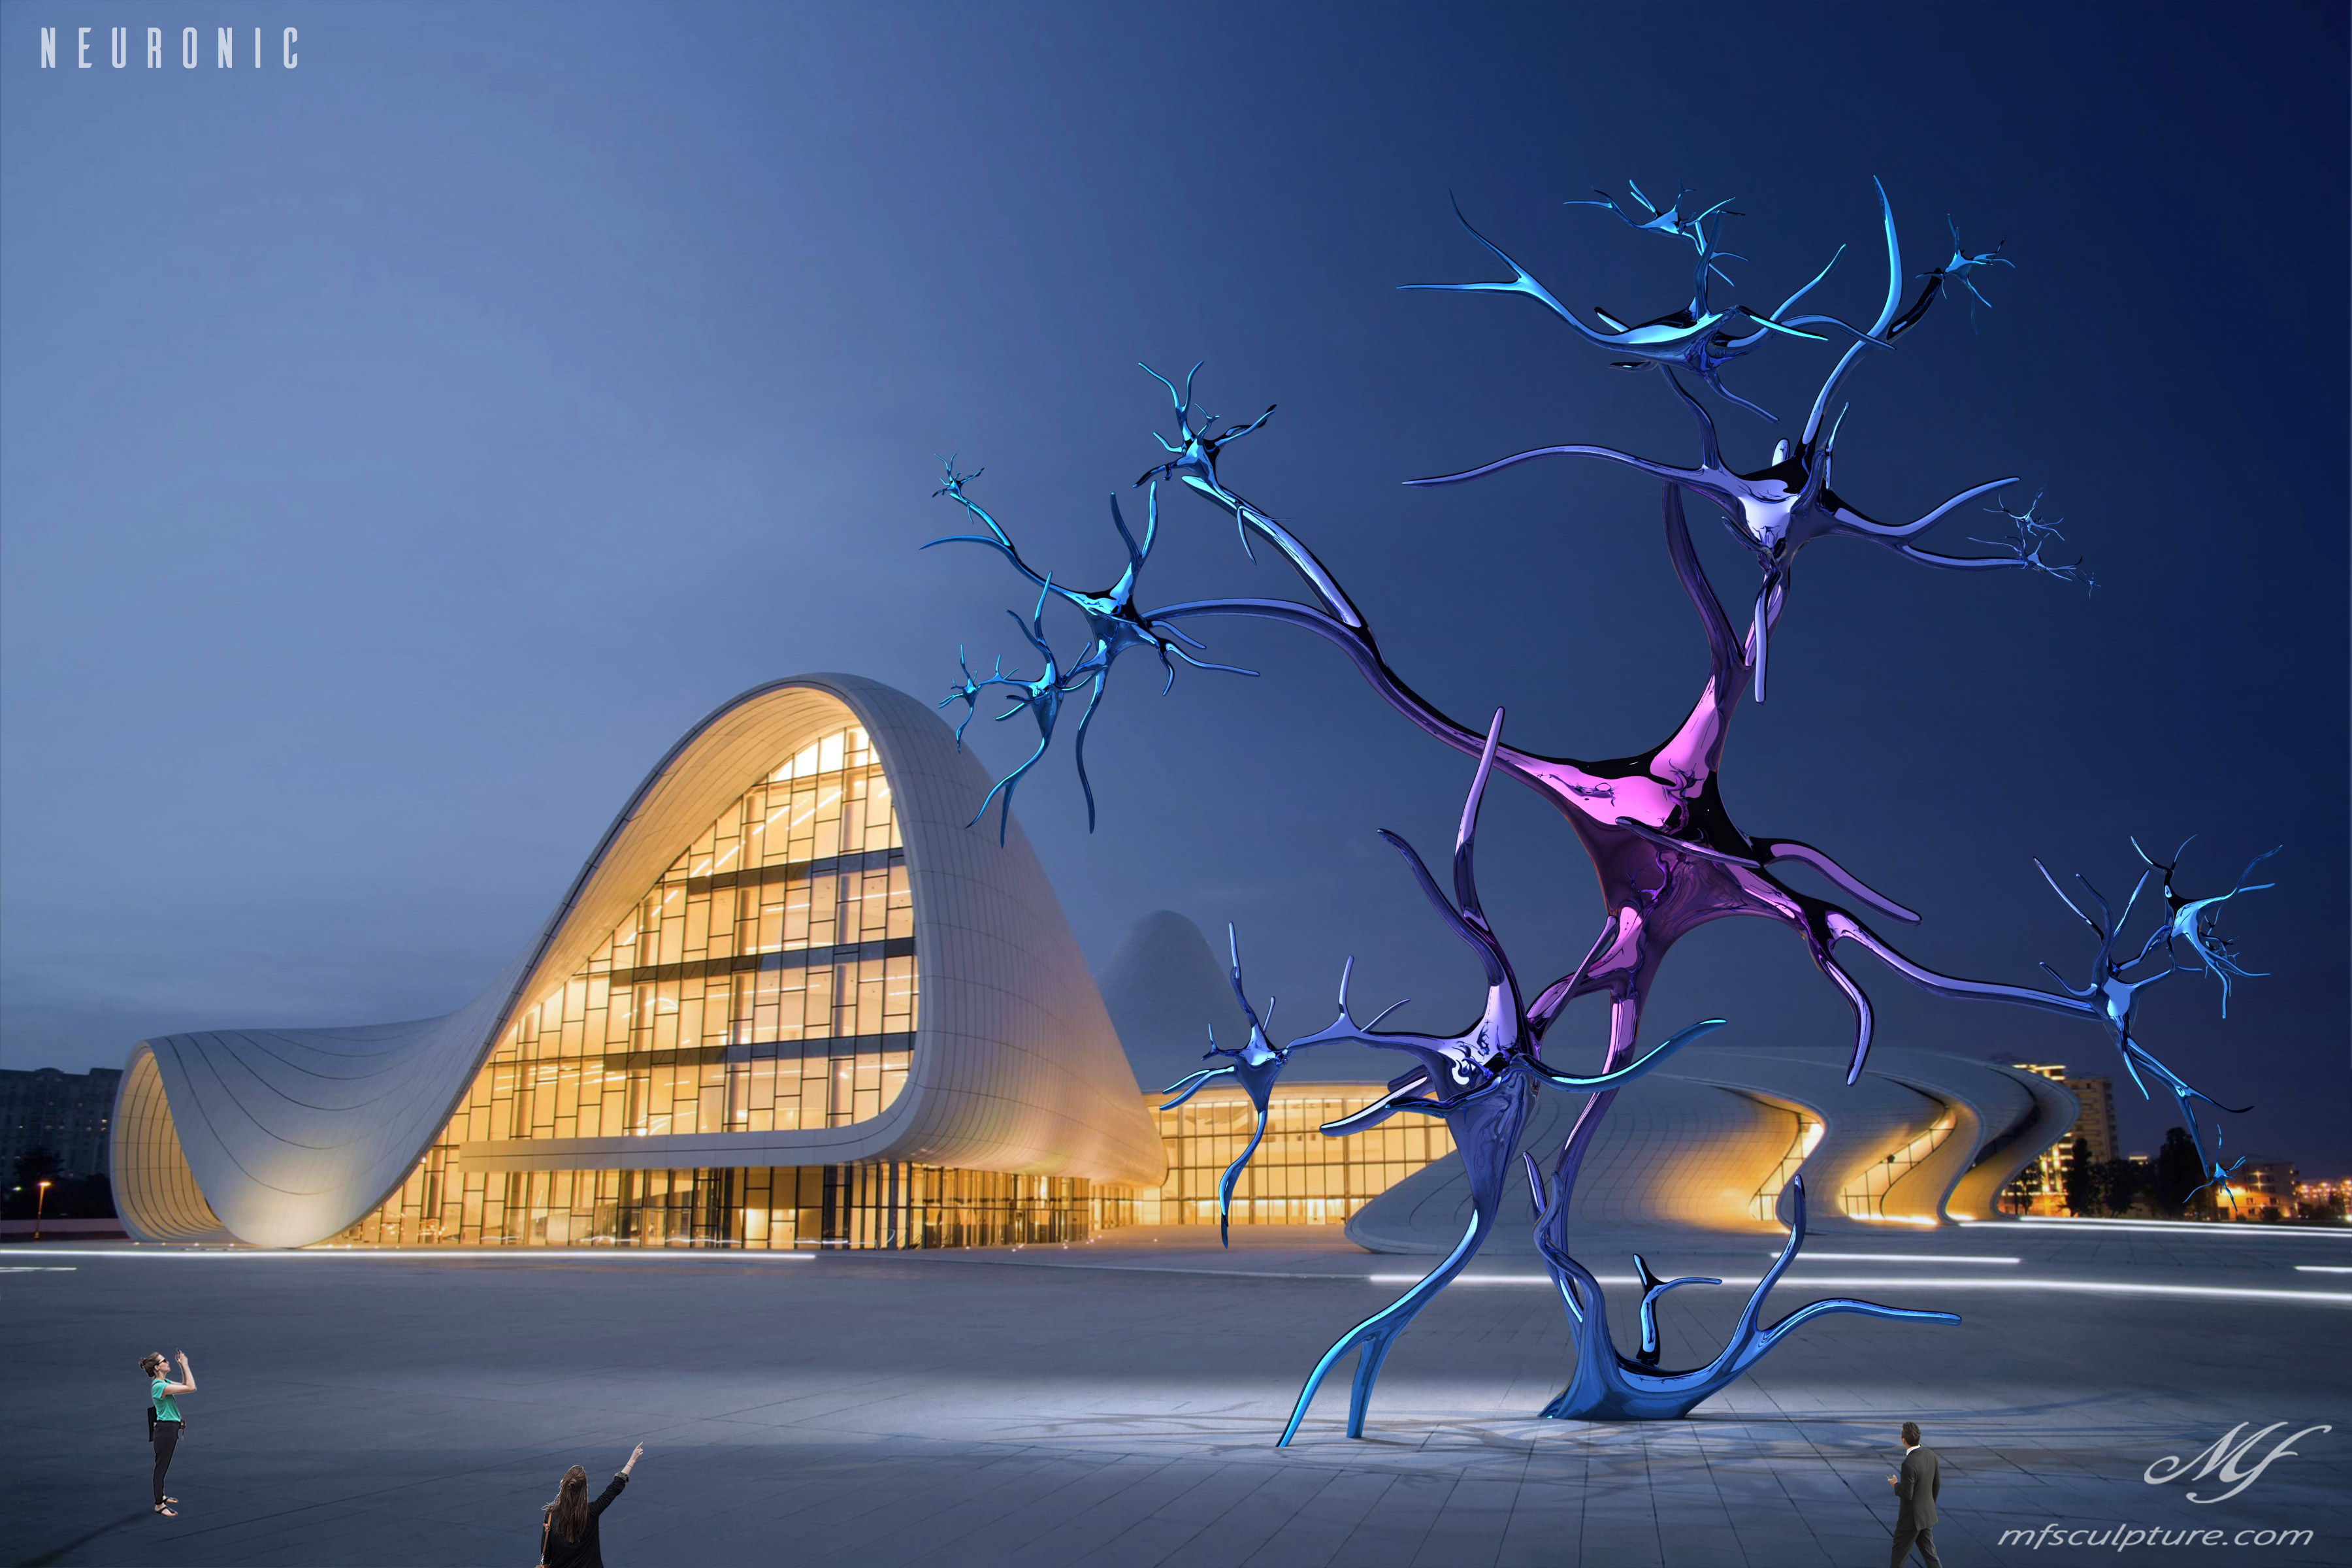 heydar aliyev center baku zaha hadid Modern Sculpture Neuronic Neuron Brain 6